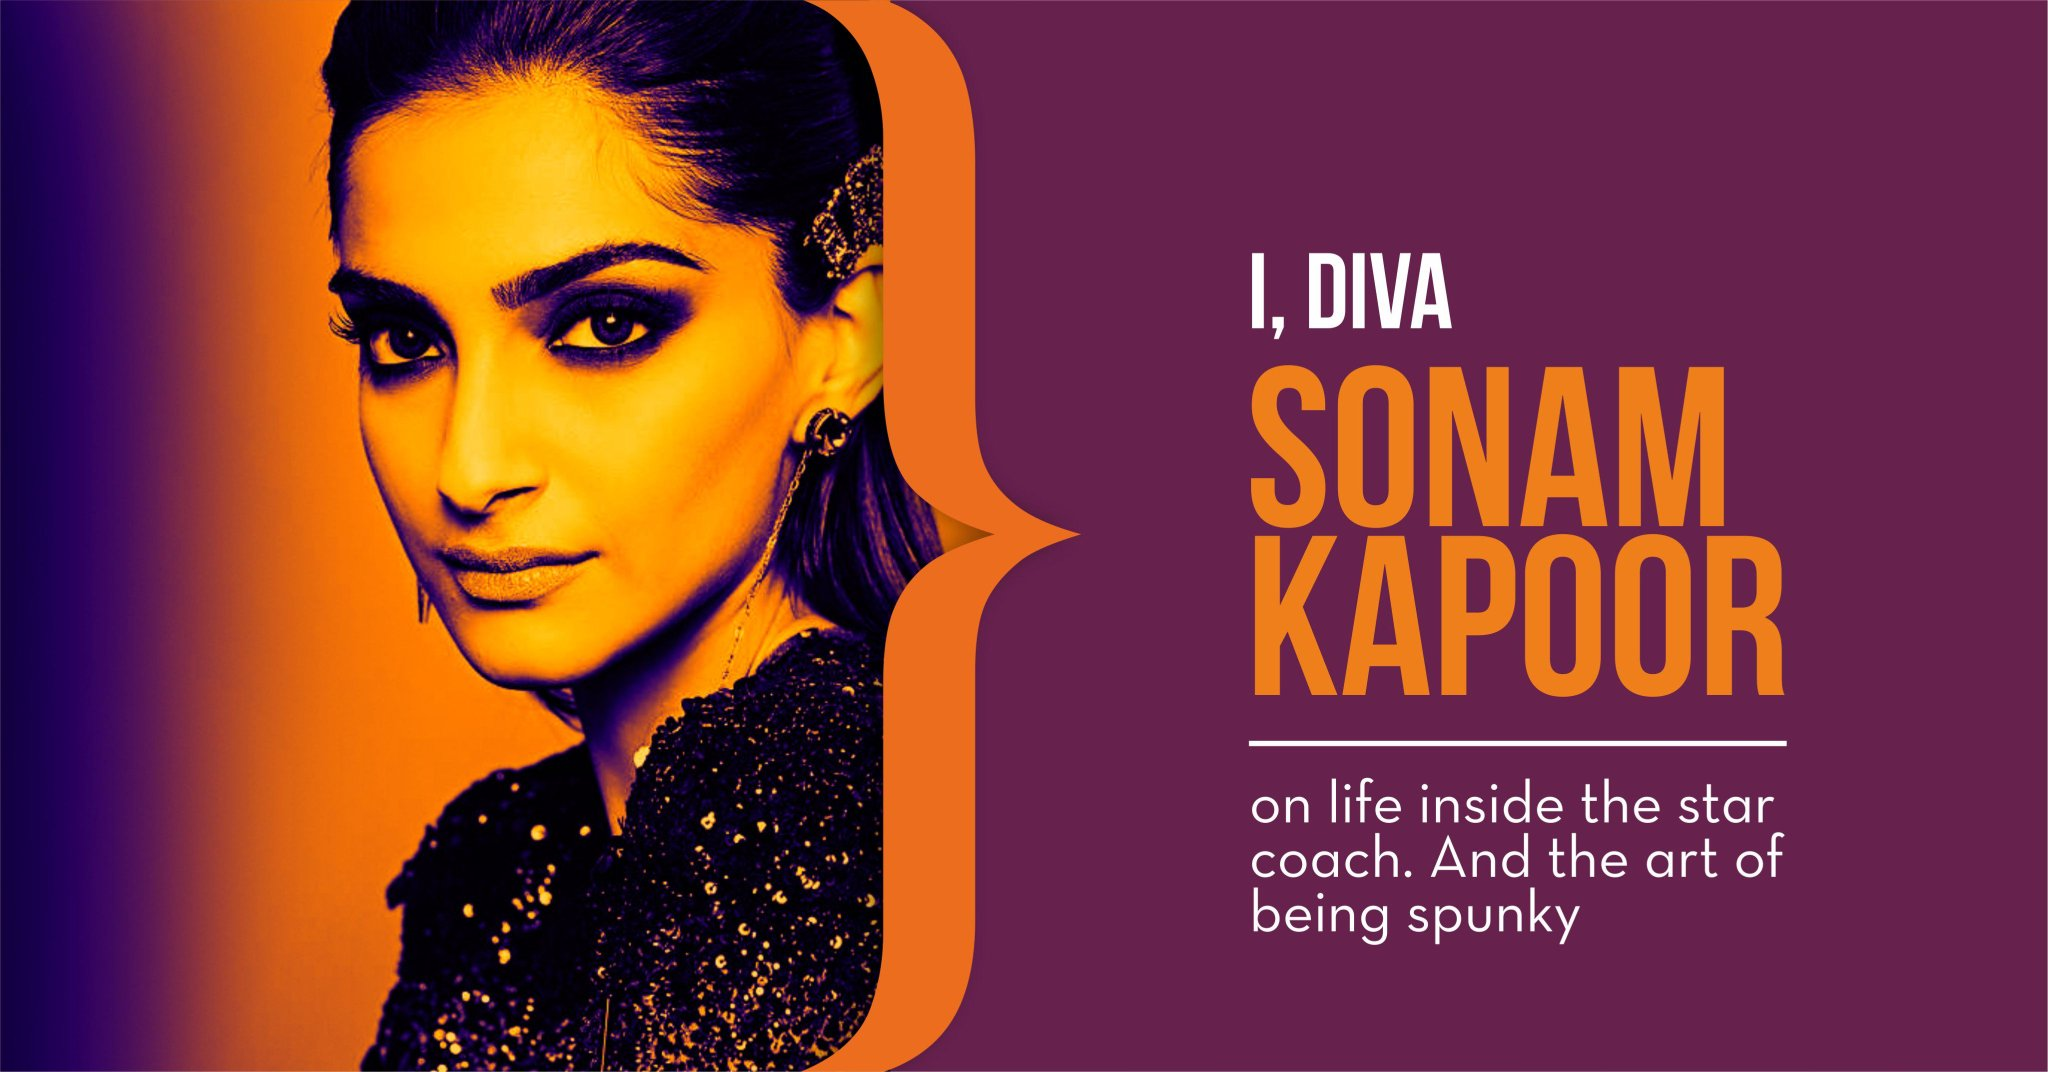 #AlgebraConversations with @sonamakapoor on Sept 9th. For more, visit https://t.co/9JuYgrt9s9 https://t.co/OGdBnMl6zU